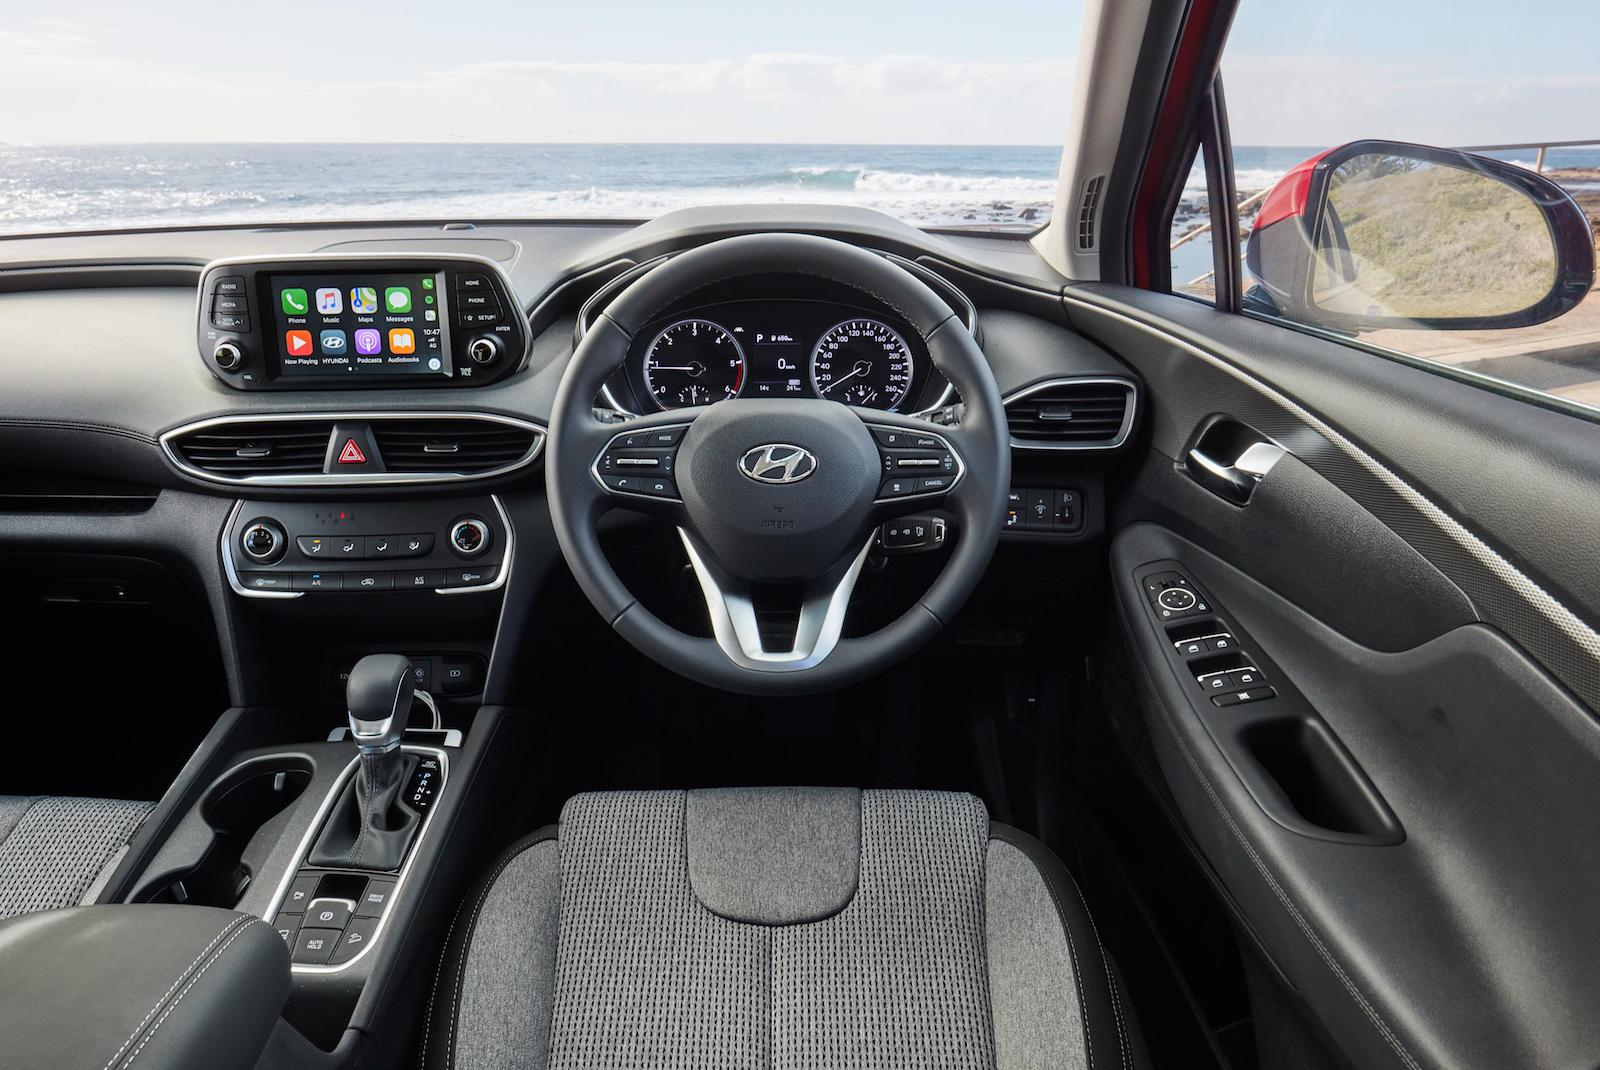 2019 hyundai santa fe now on sale in australia performancedrive. Black Bedroom Furniture Sets. Home Design Ideas